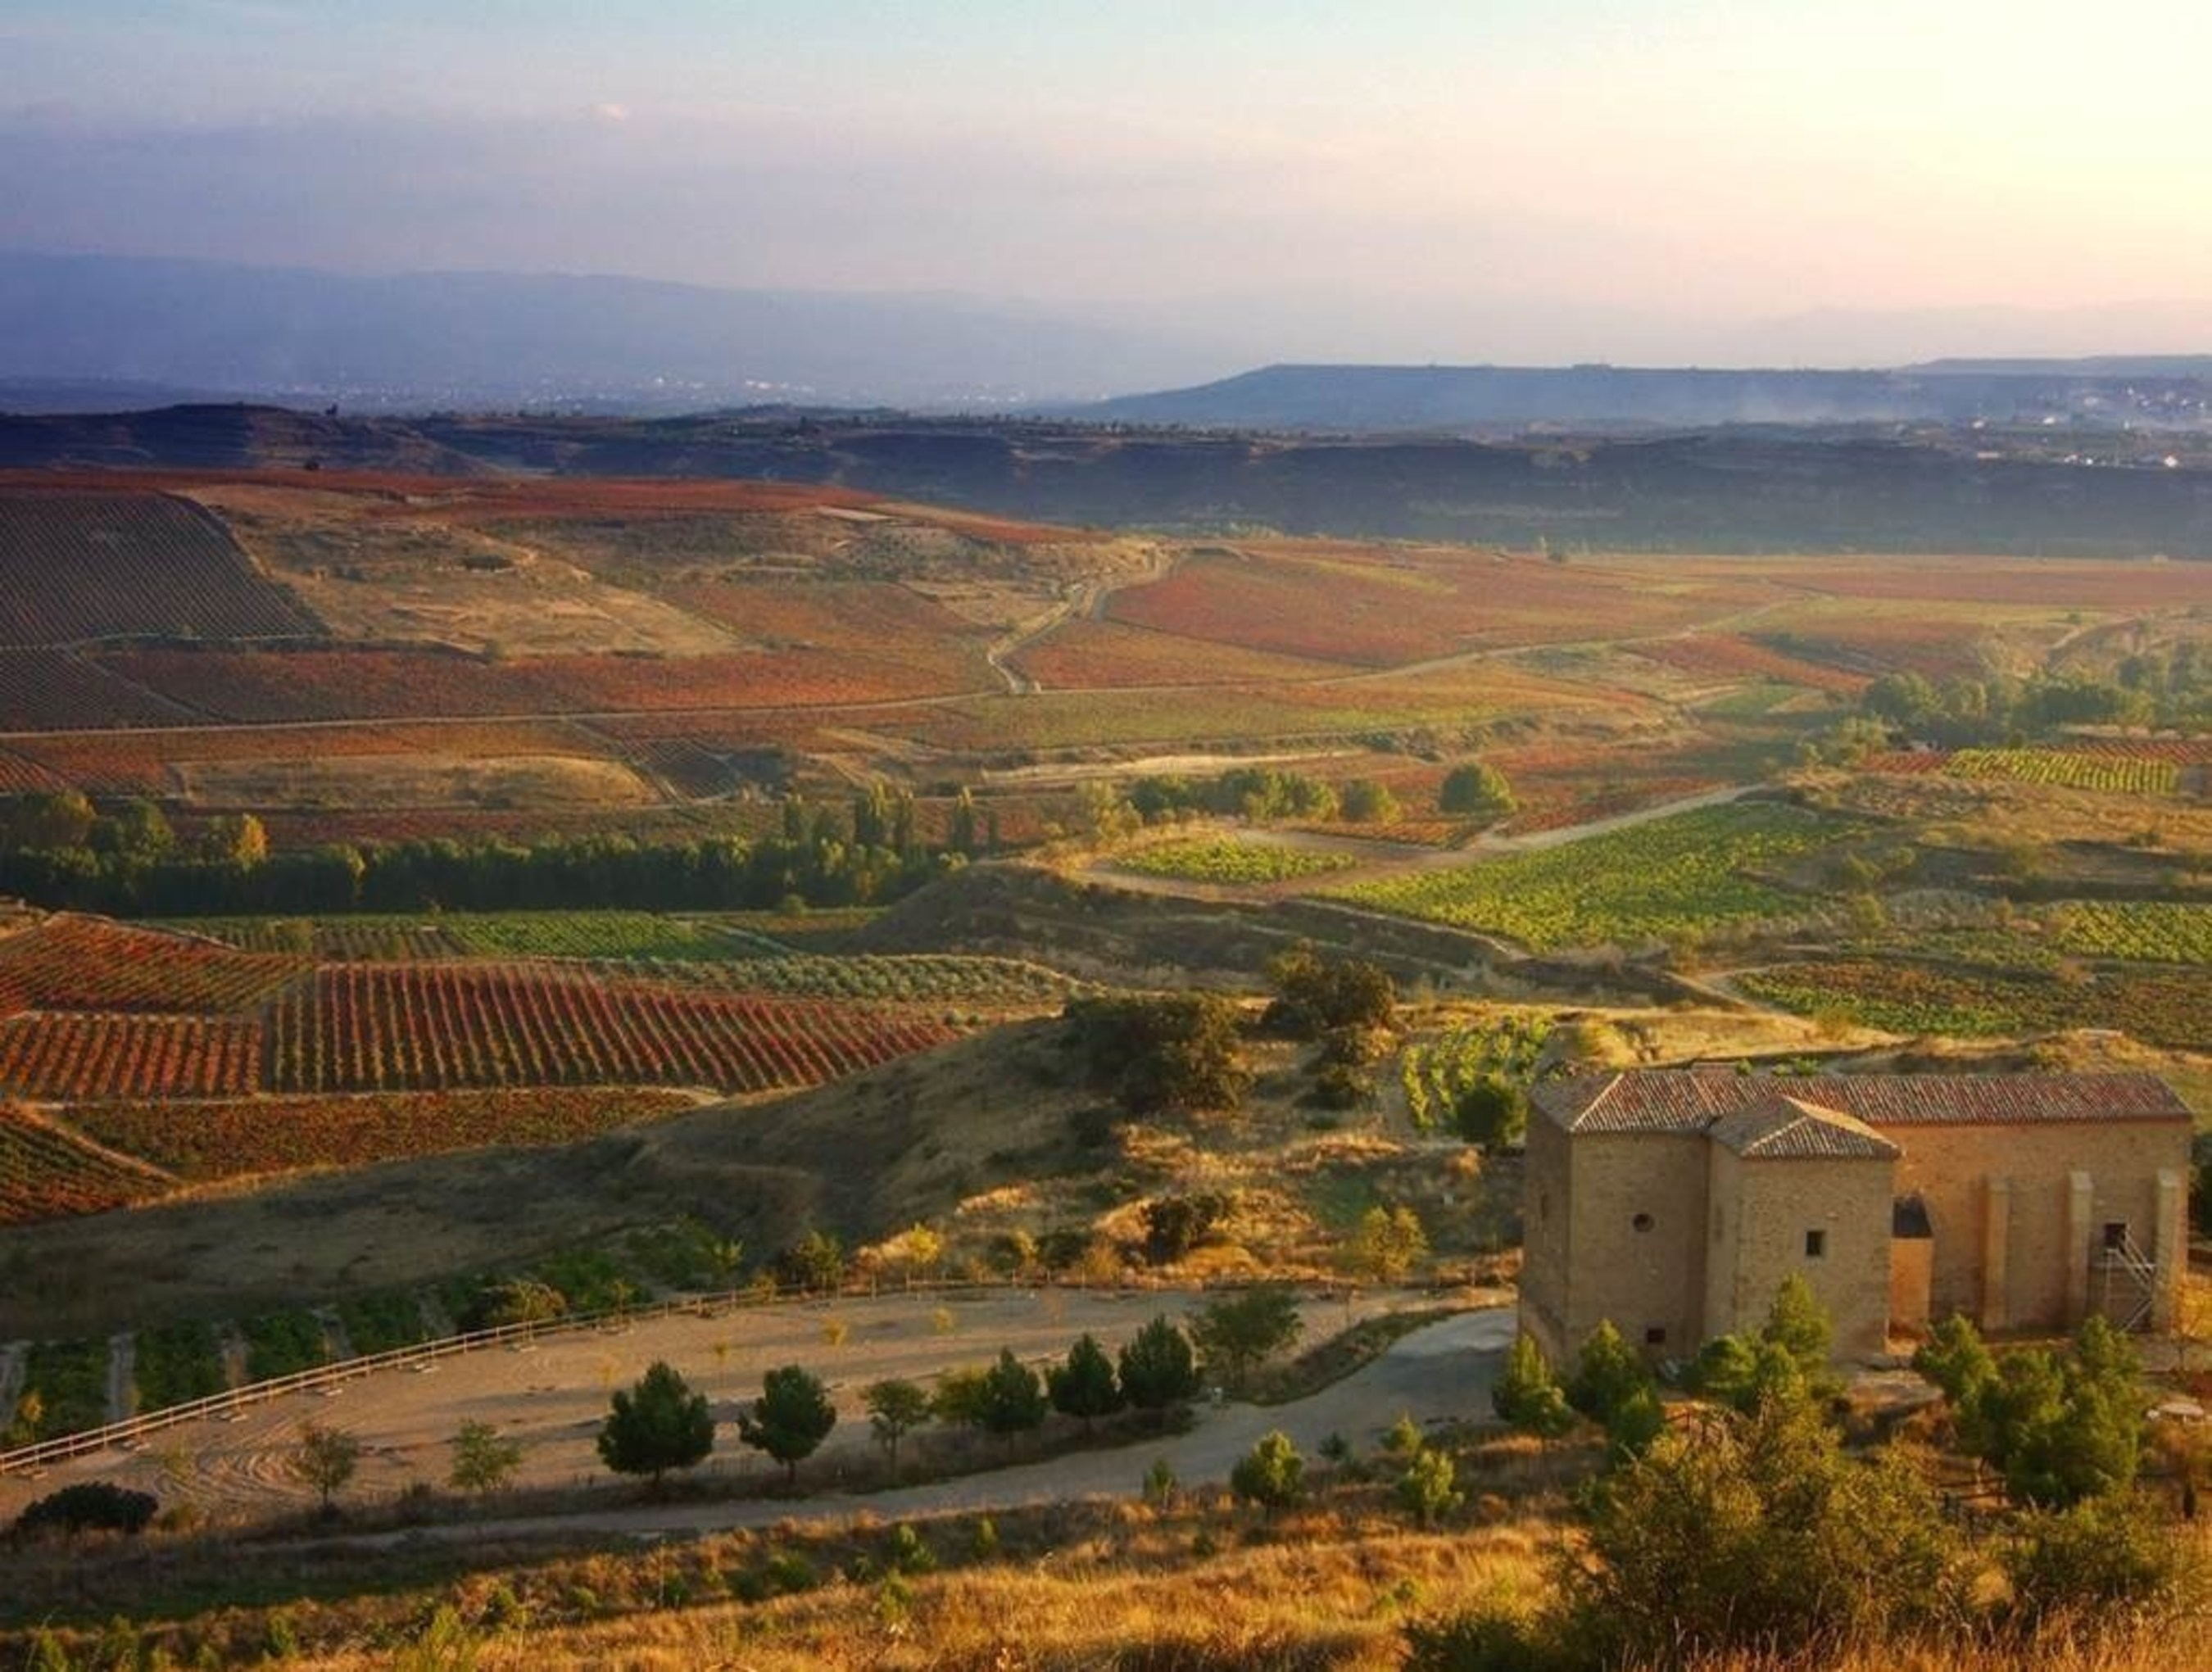 A view of the Rioja wine region, located in north central Spain and considered one of the greatest wine regions in the world.